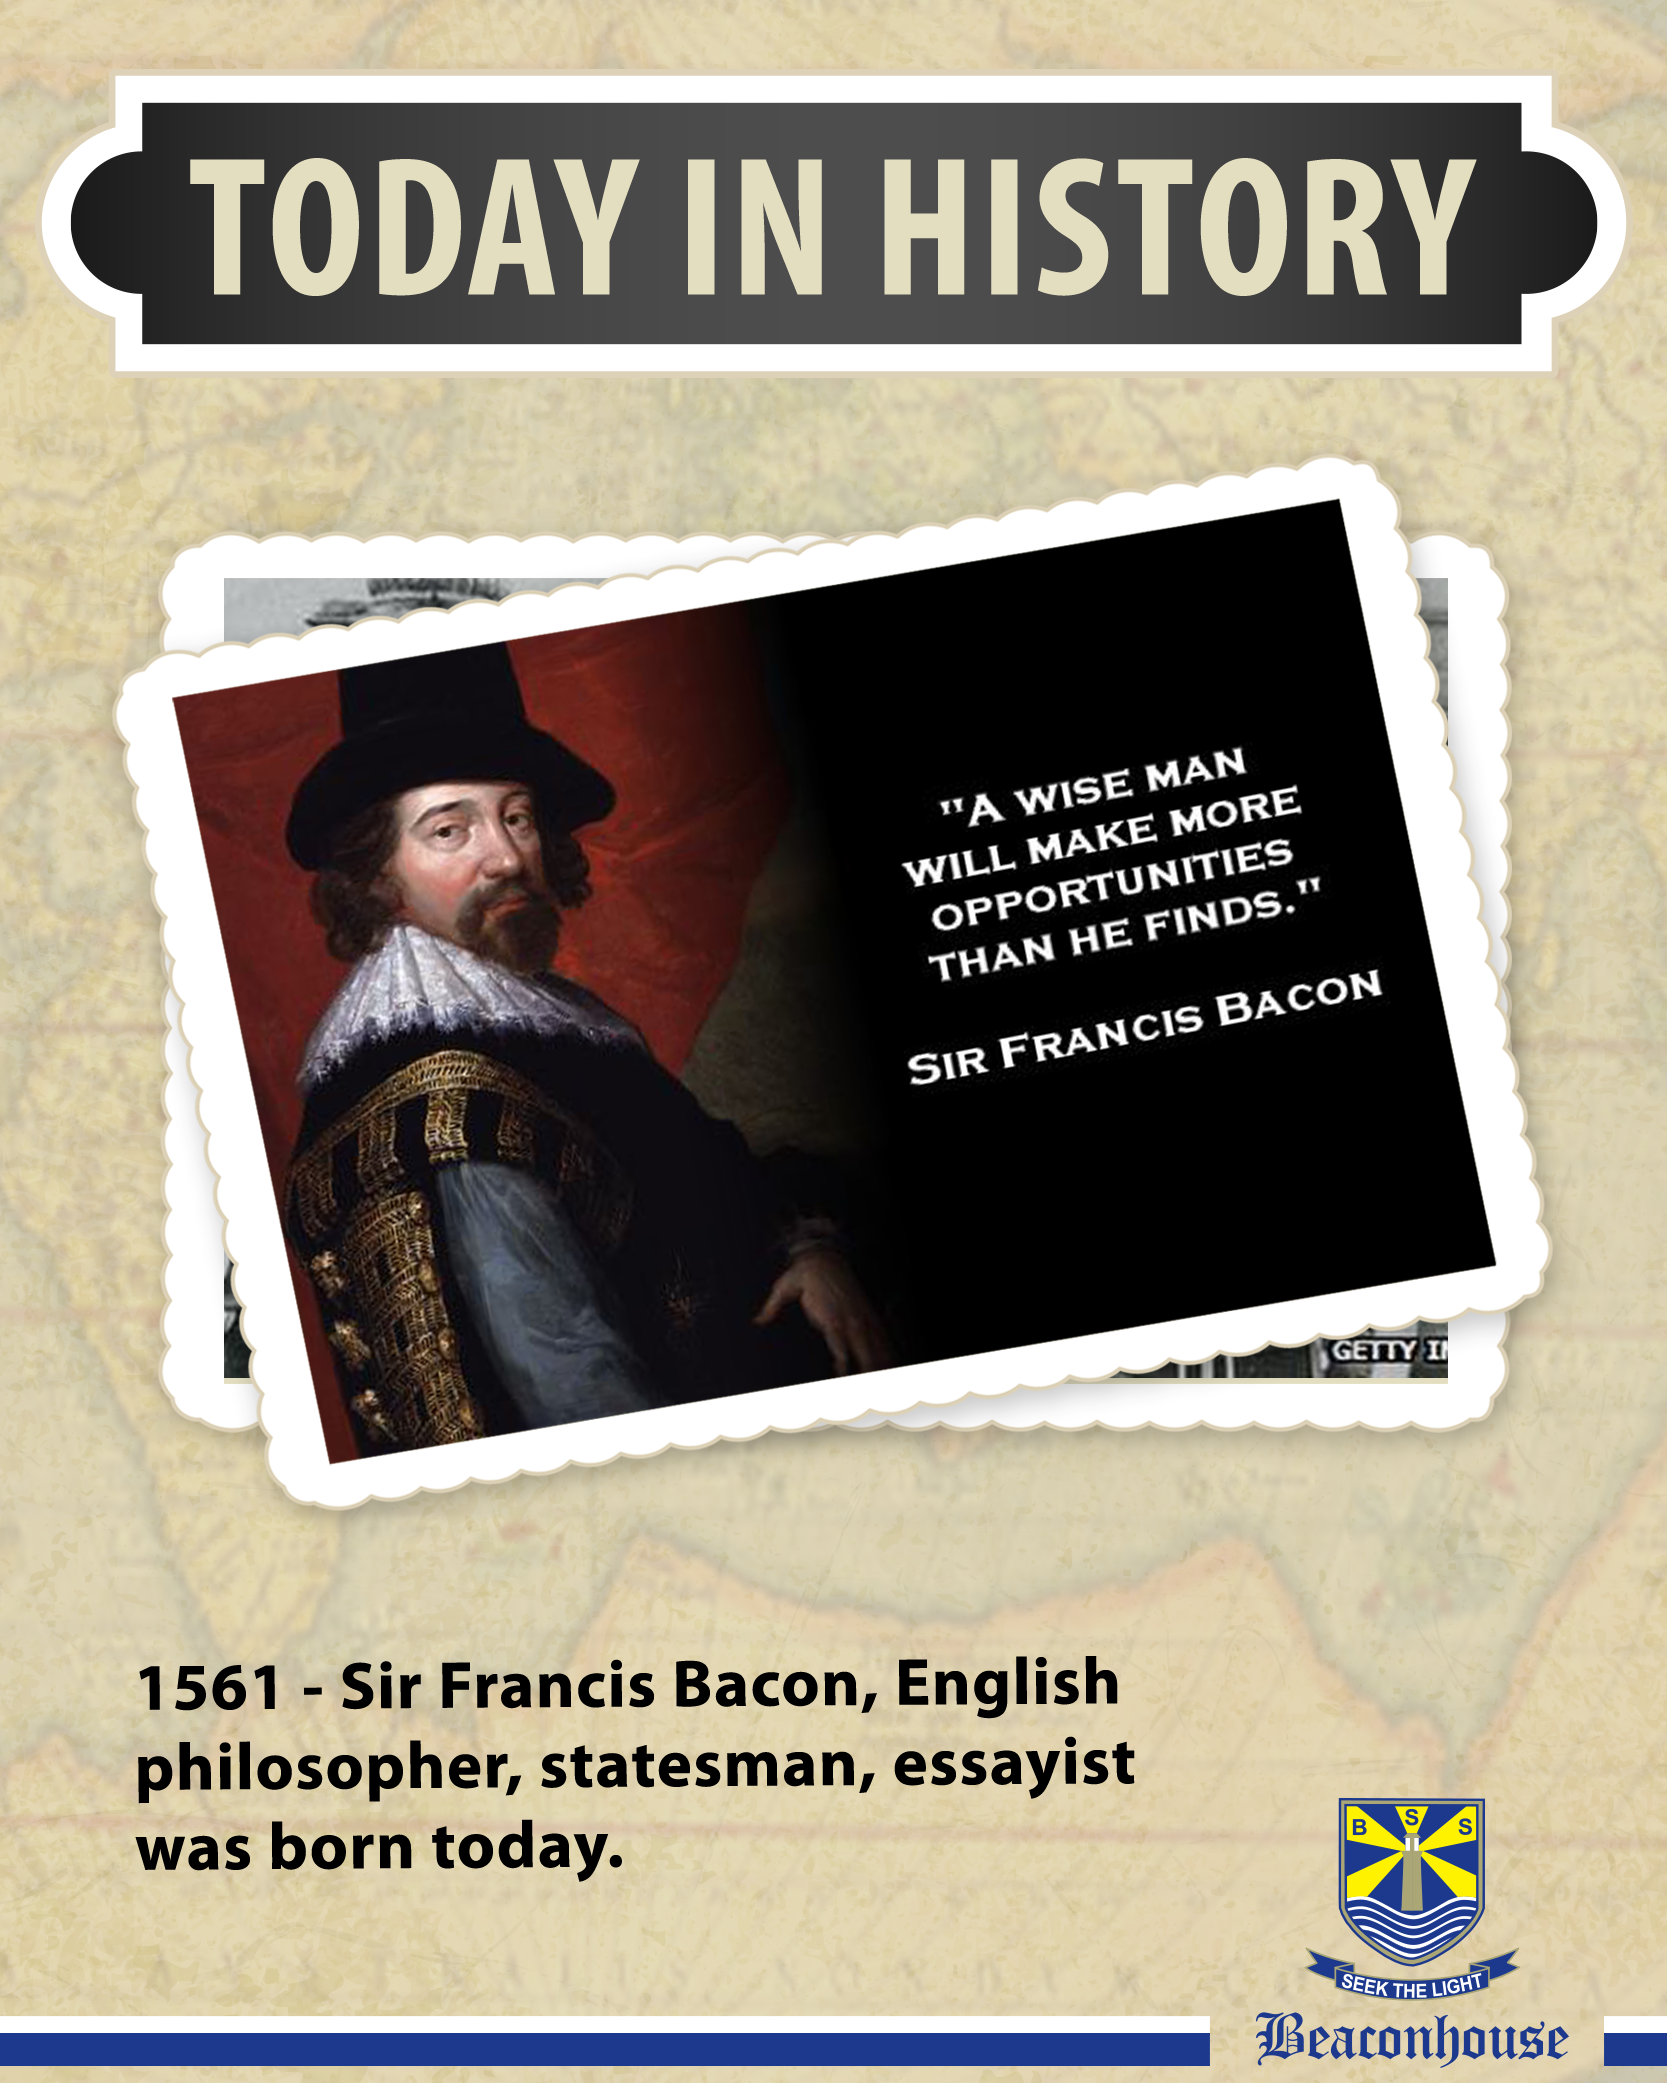 #‎TodayInHistory 1561 - Sir Francis Bacon, English philosopher, statesman, essayist was born today.